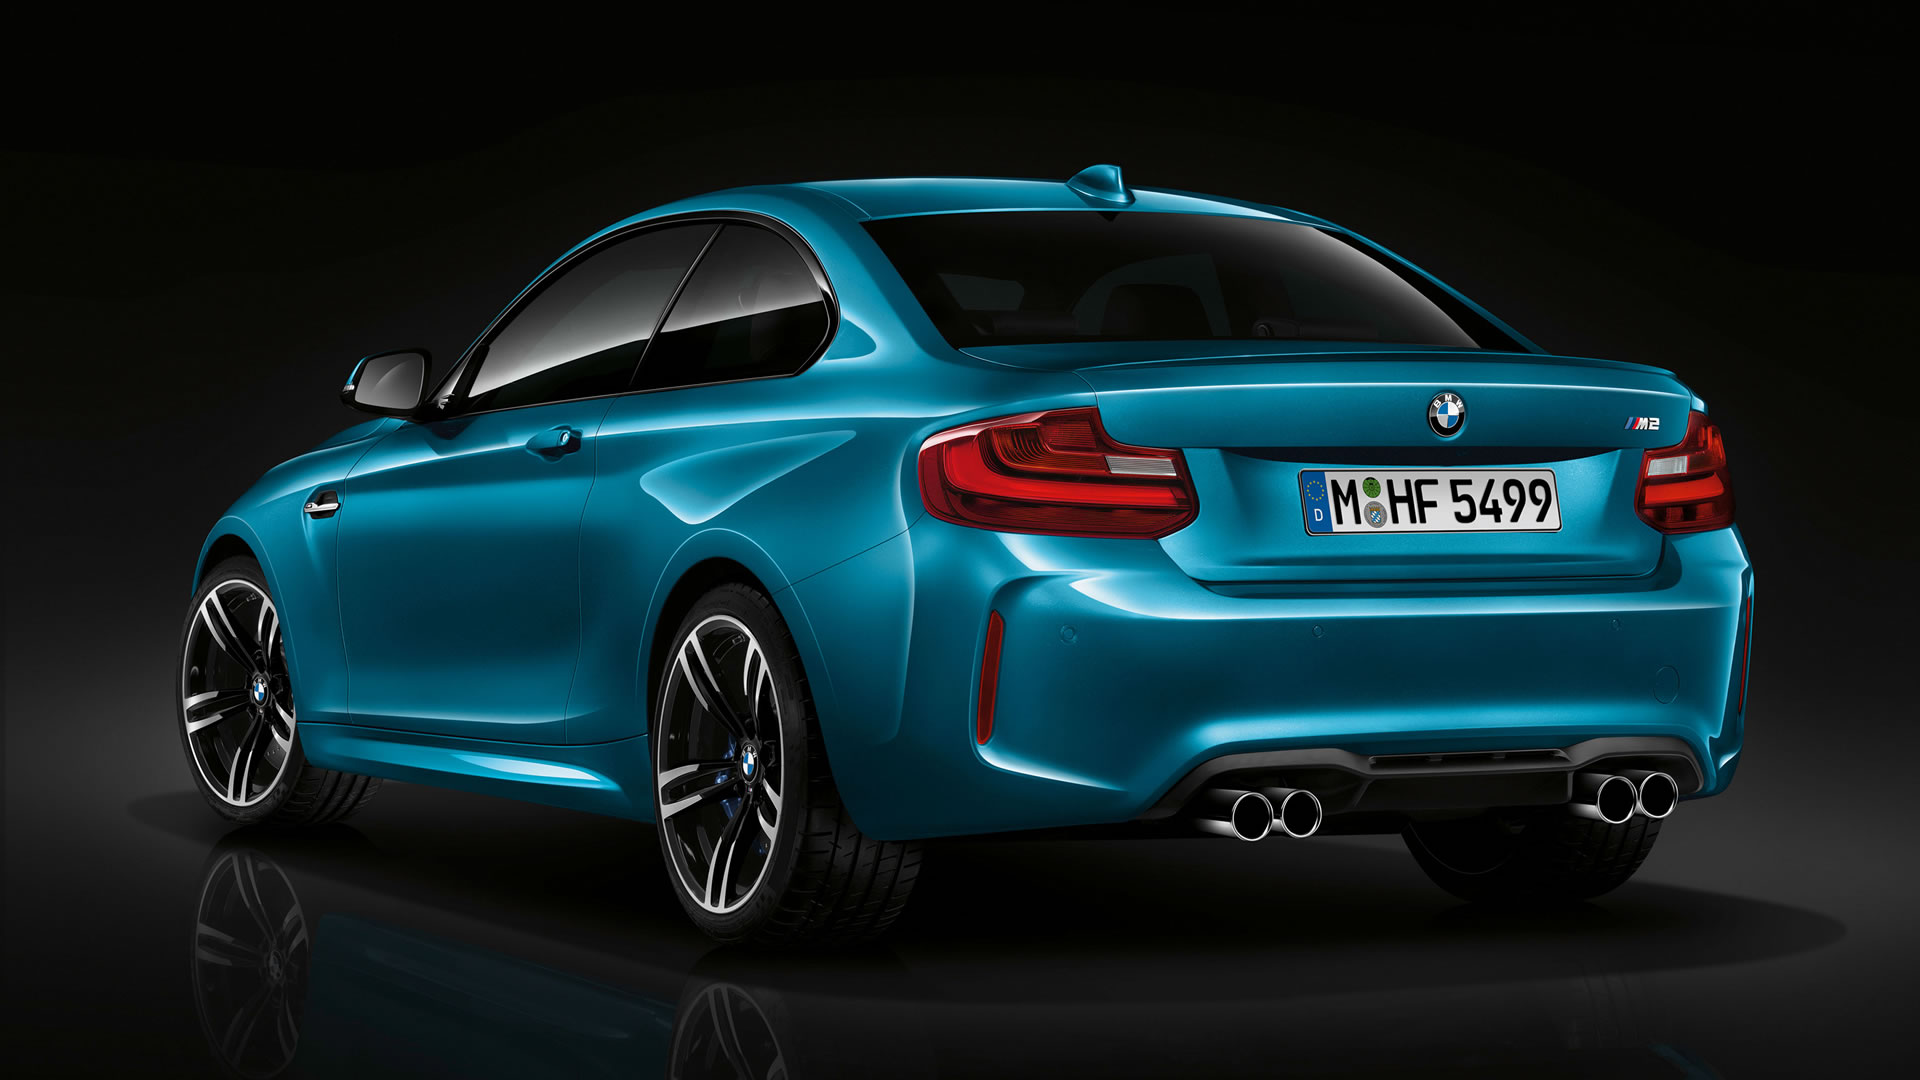 2016 BMW M2 Coupe Wallpaper - 1920 x 1080